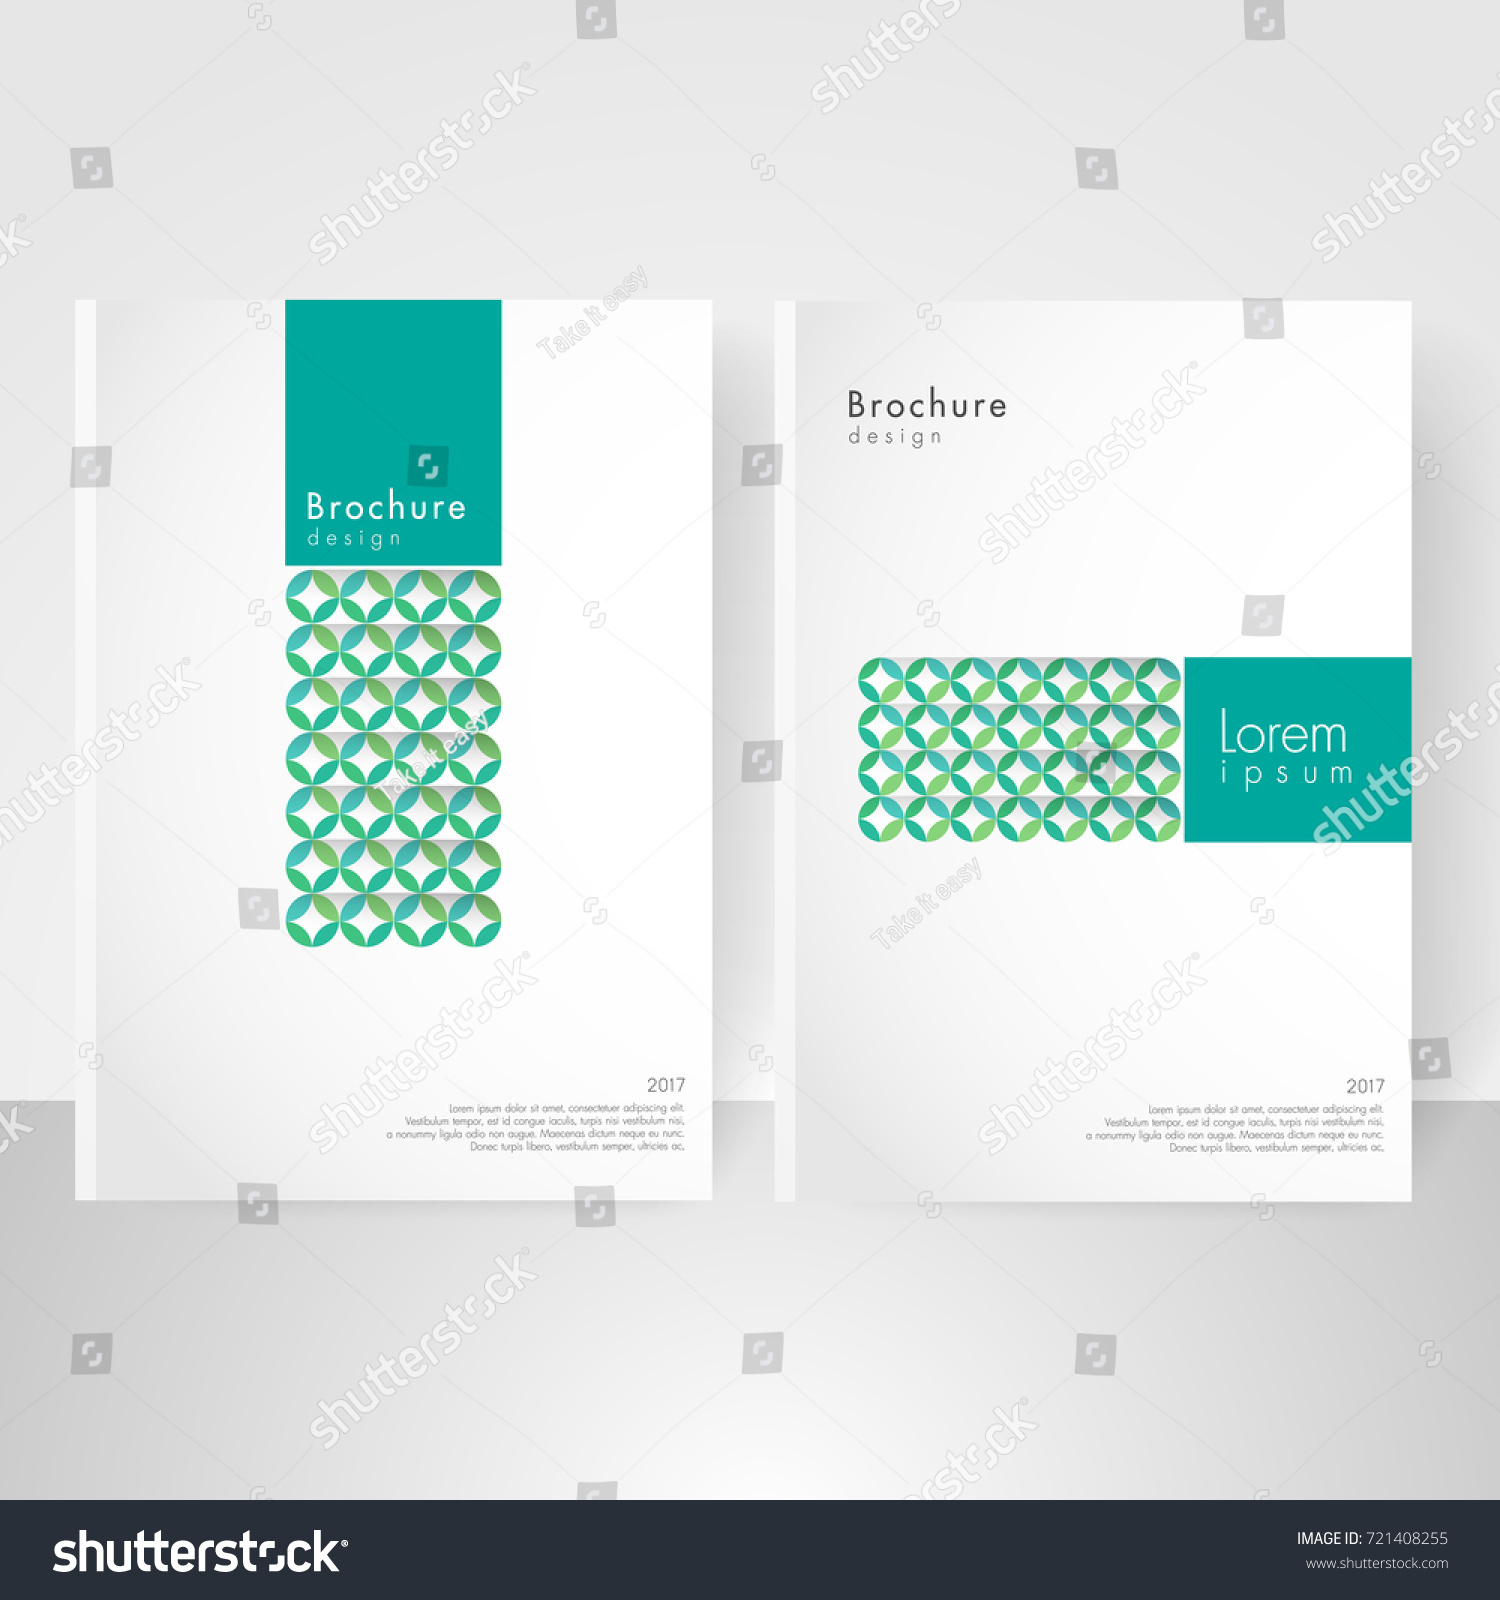 Business Cards Leaflets Gallery - Free Business Cards